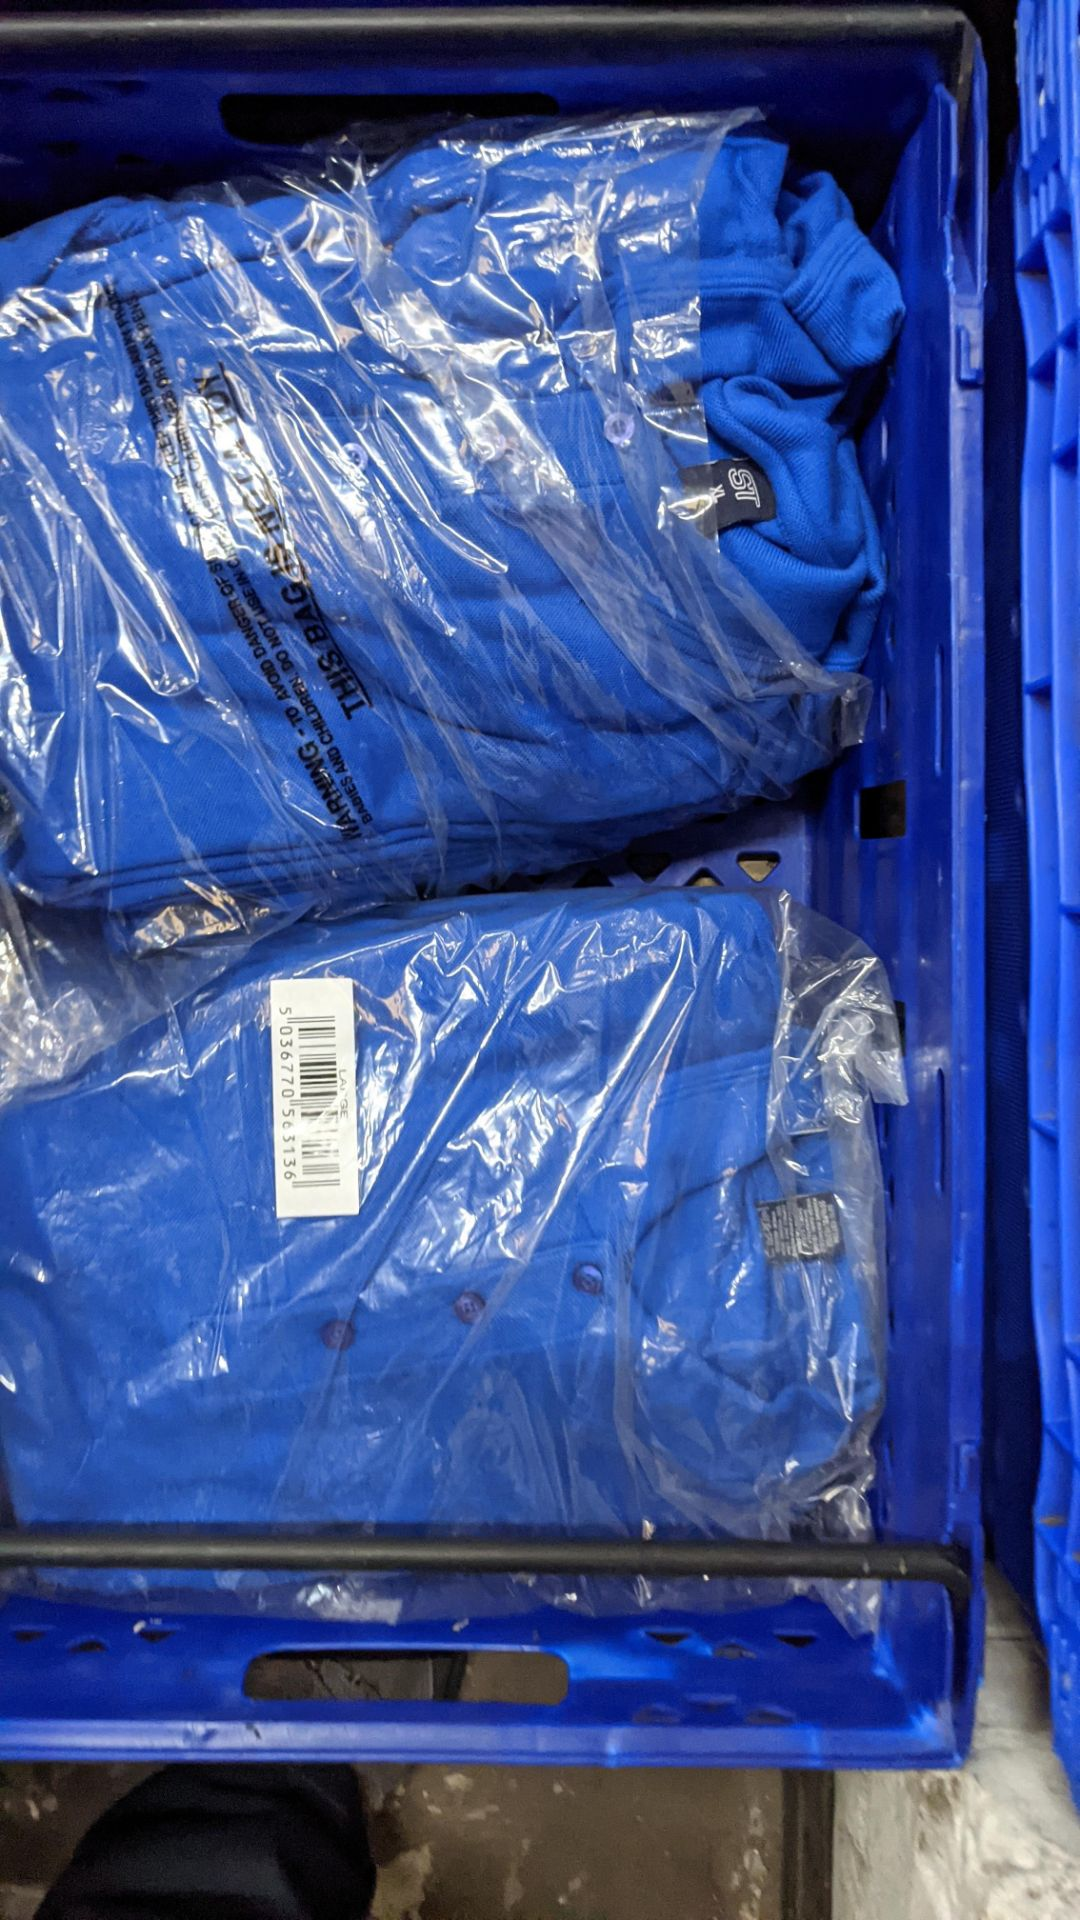 Approx 30 off royal blue polo shirts (2 crates) - Image 6 of 6